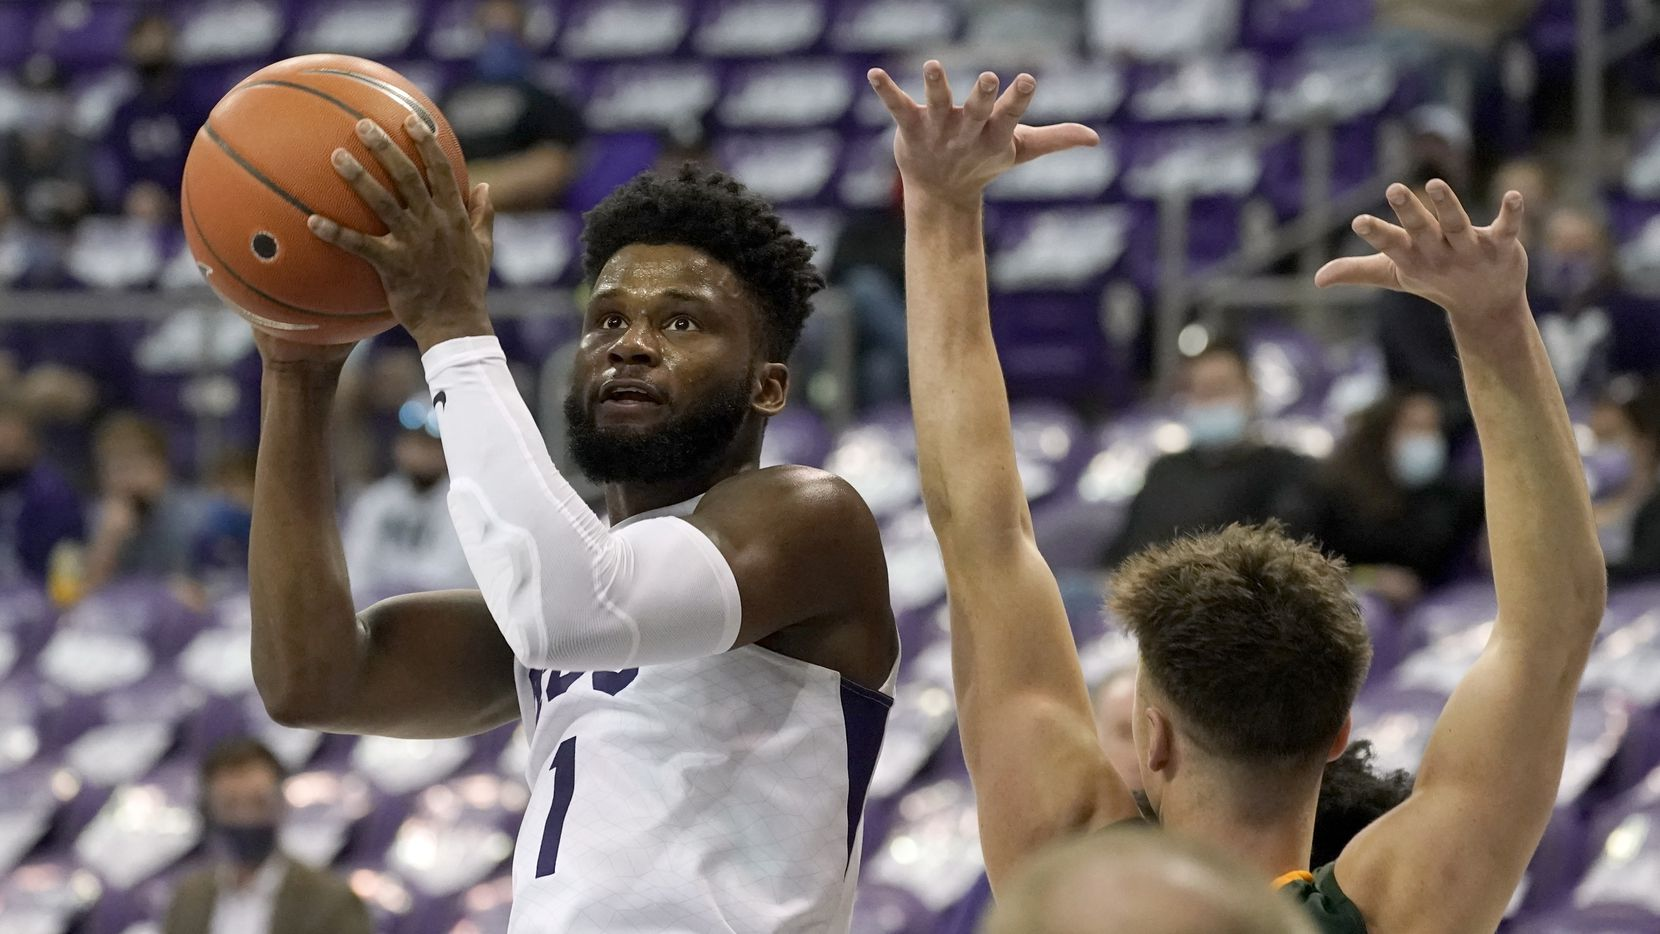 TCU guard Mike Miles (1) looks to the basket as North Dakota State guard Boden Skunberg defends during the second half of a game in Fort Worth on Tuesday, Dec. 22, 2020.